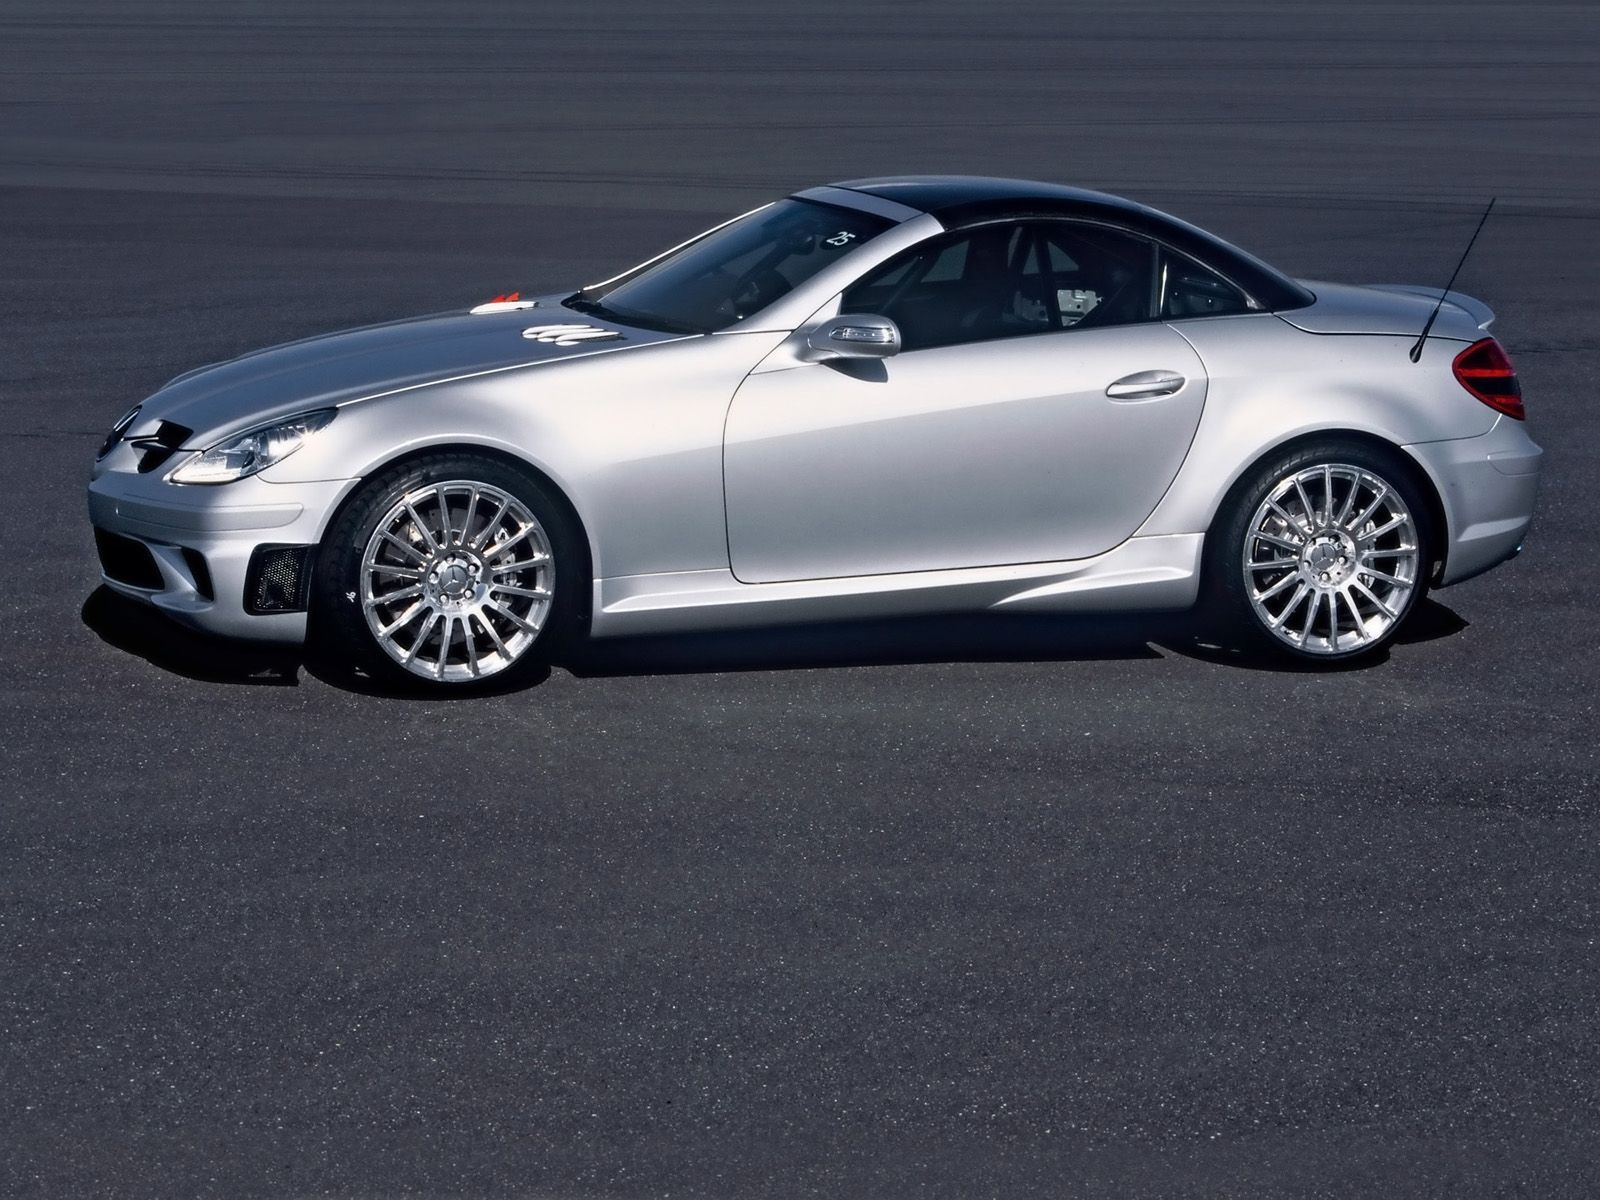 Mercedes Benz Slk 55 Amg Gained Recognition And Good Reviews Of